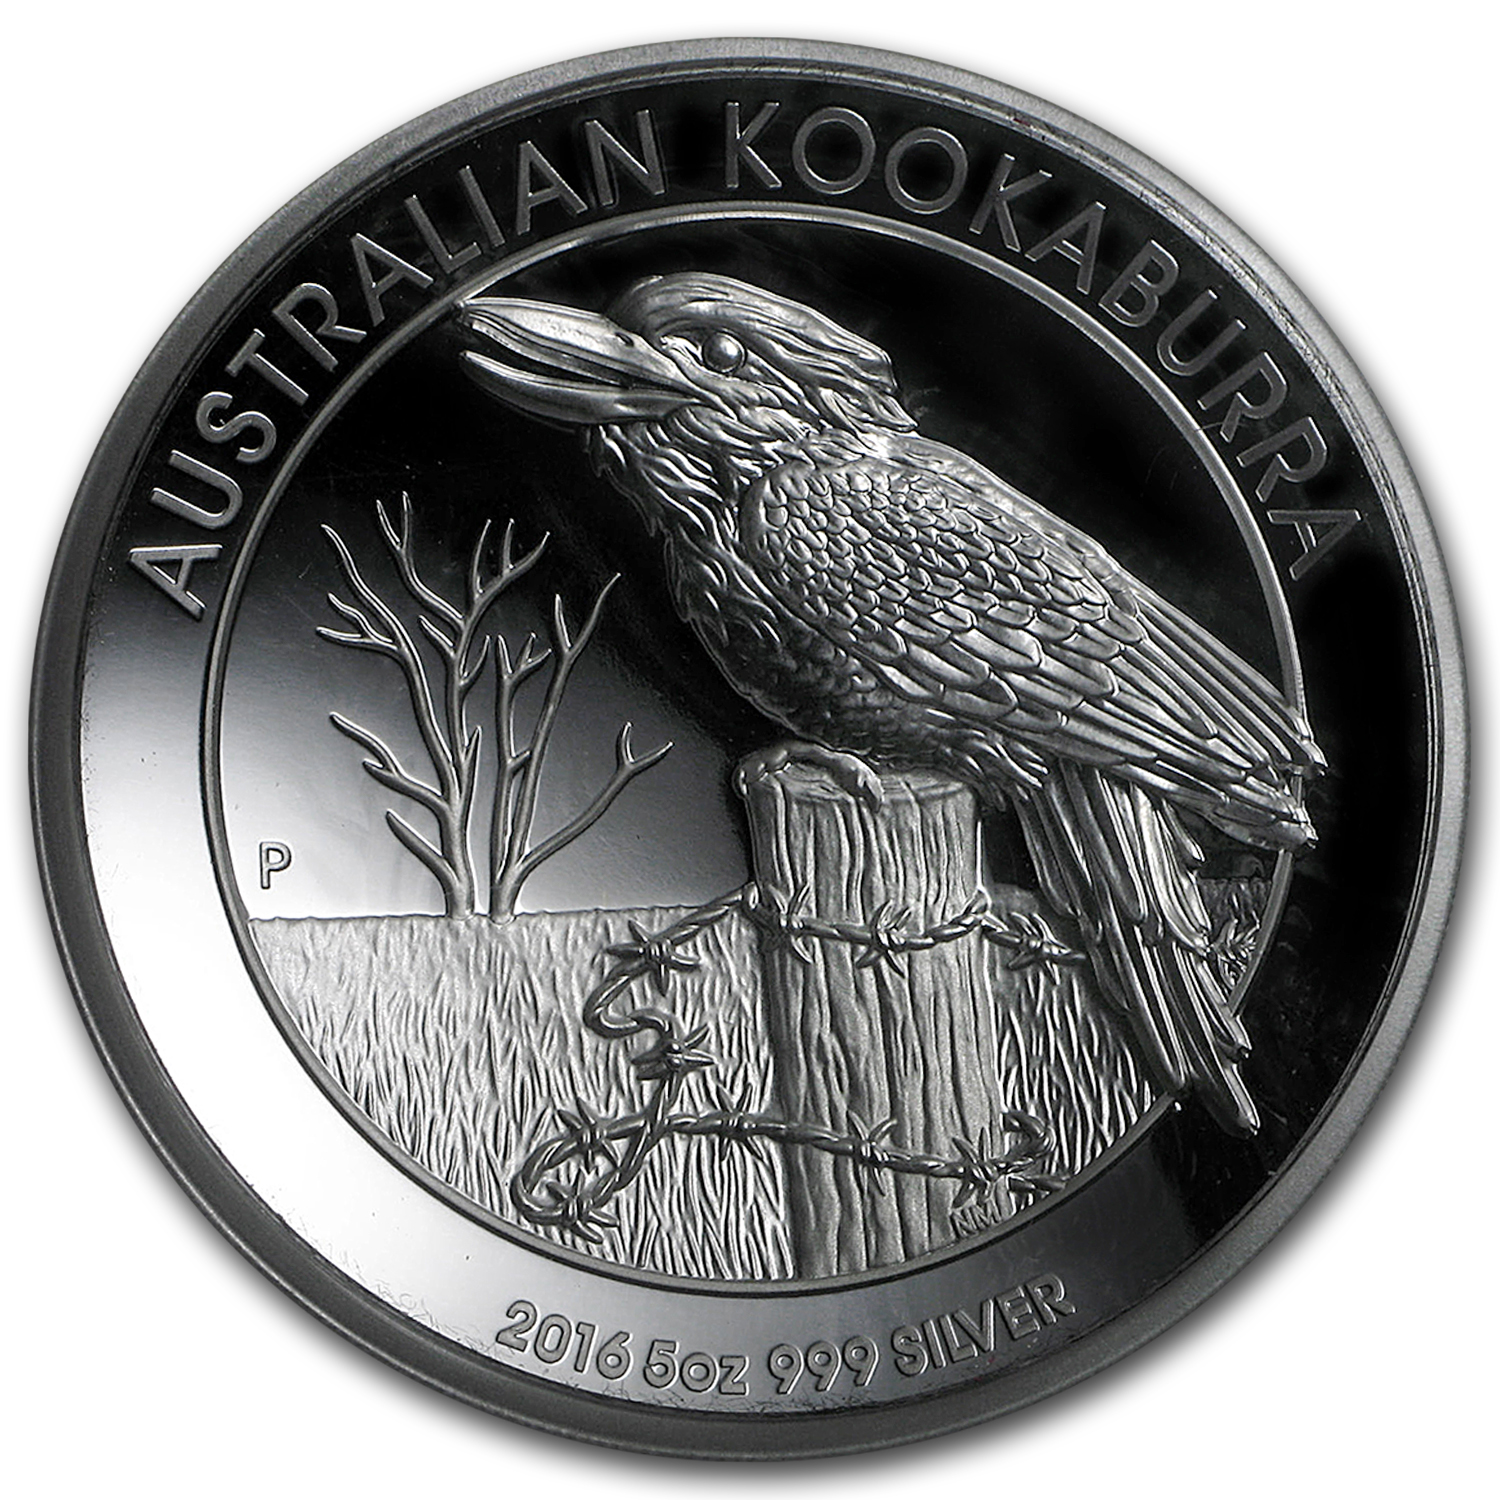 2016 Australia 5 oz Silver Kookaburra Proof (High Relief)